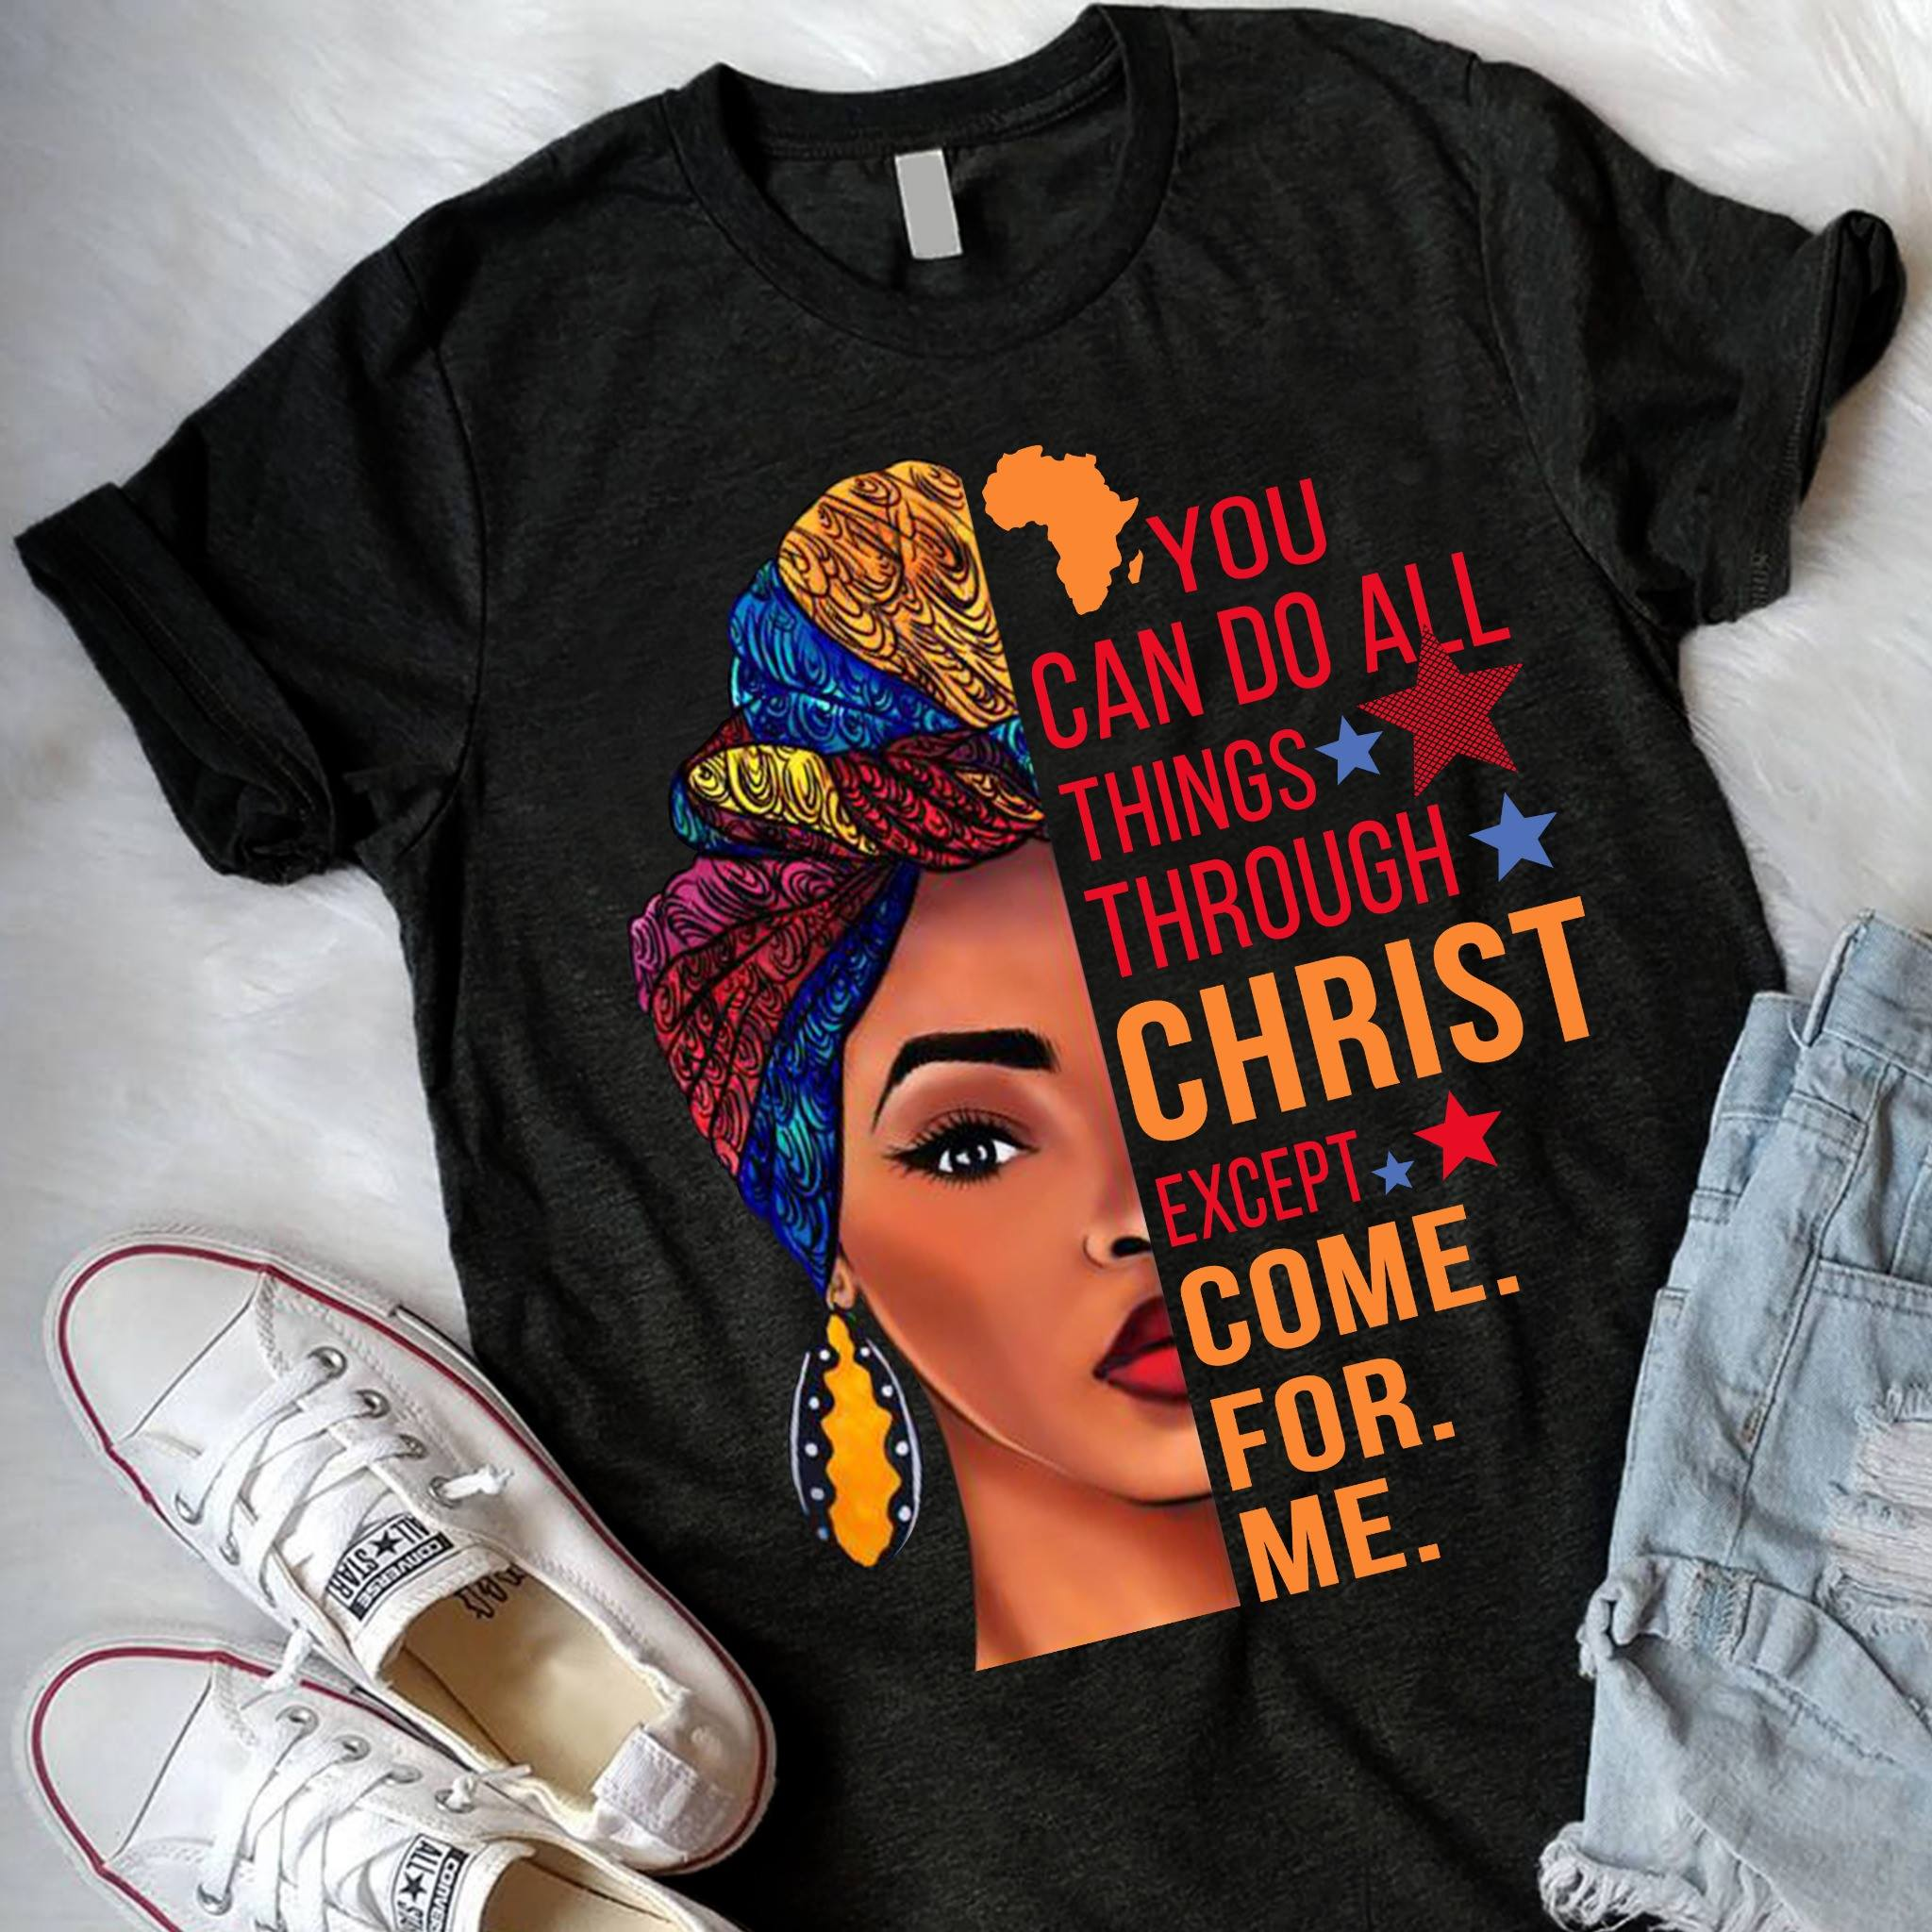 You can do all things through Christ except come for me shirt